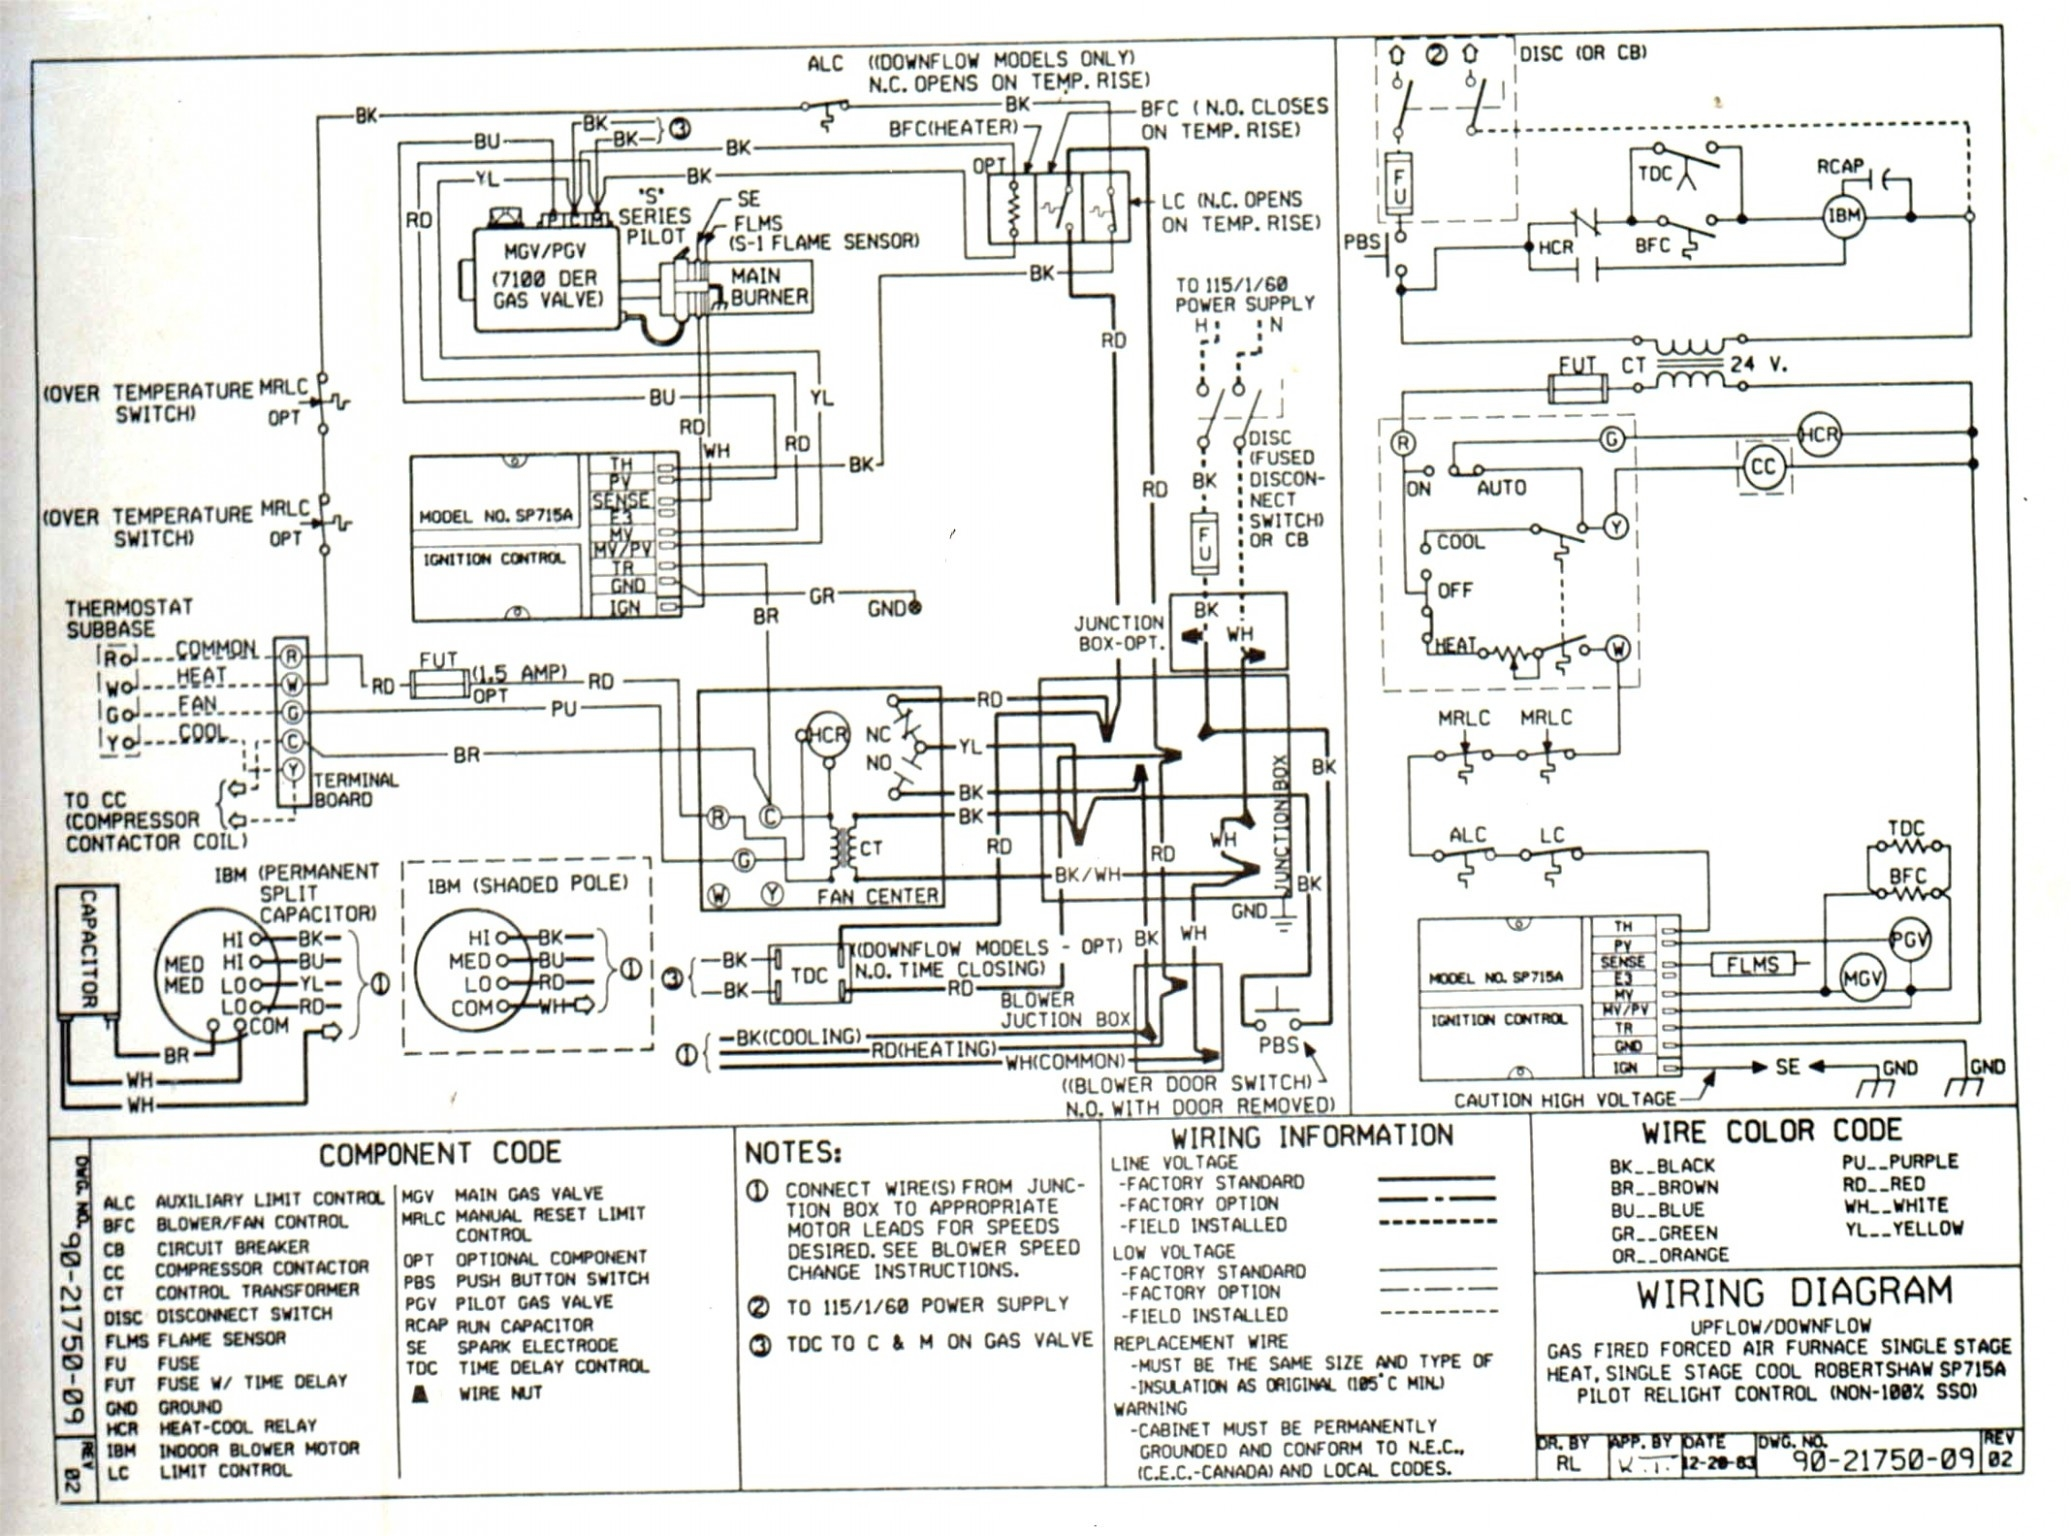 nordyne basic furnace wiring diagram intertherm e2eb 015ha wiring diagram | free wiring diagram #15